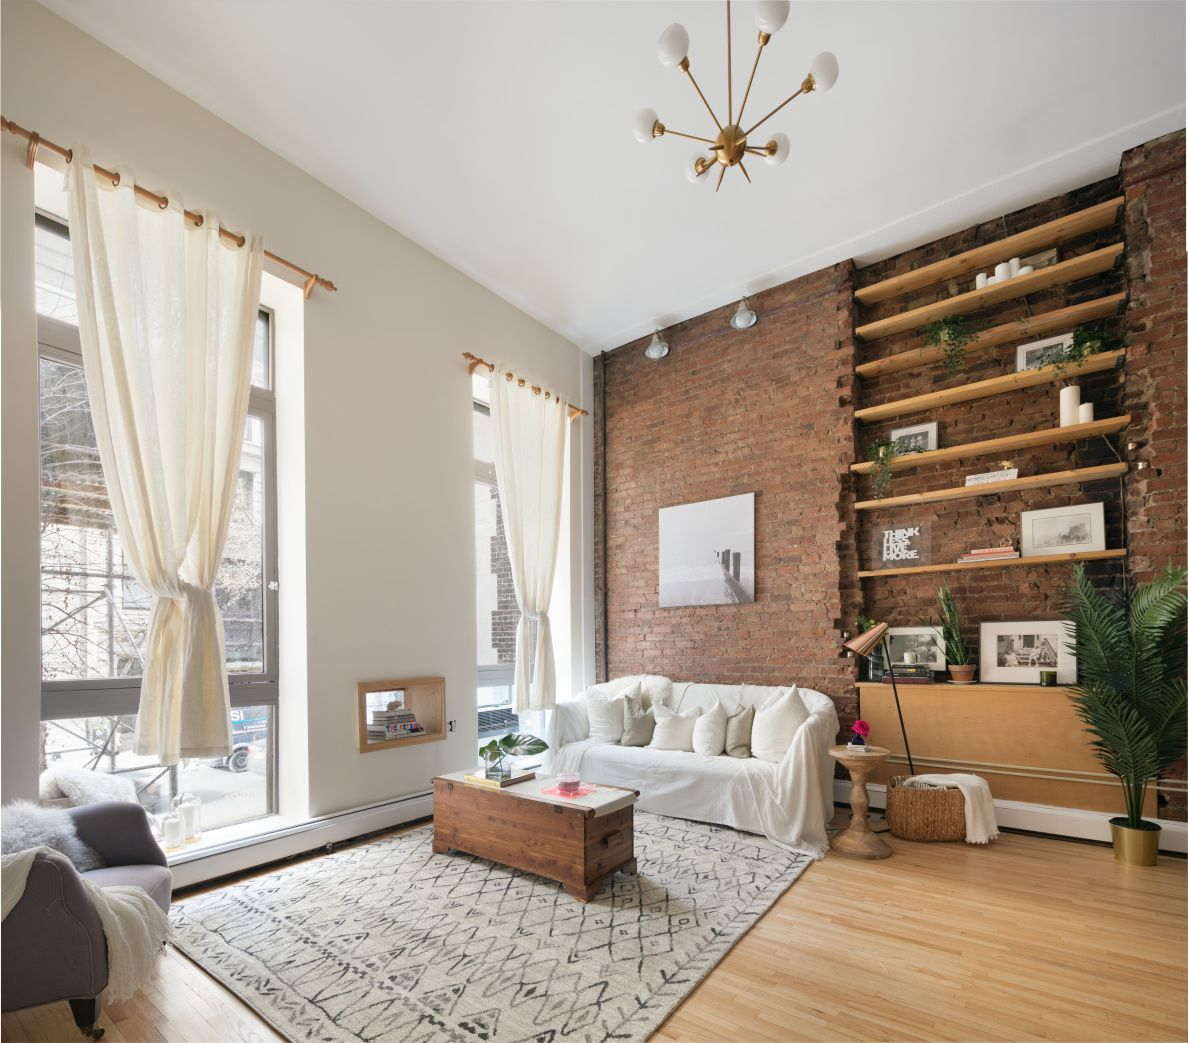 New York City Pre War Loft Real Estate Listing Apartment Therapy